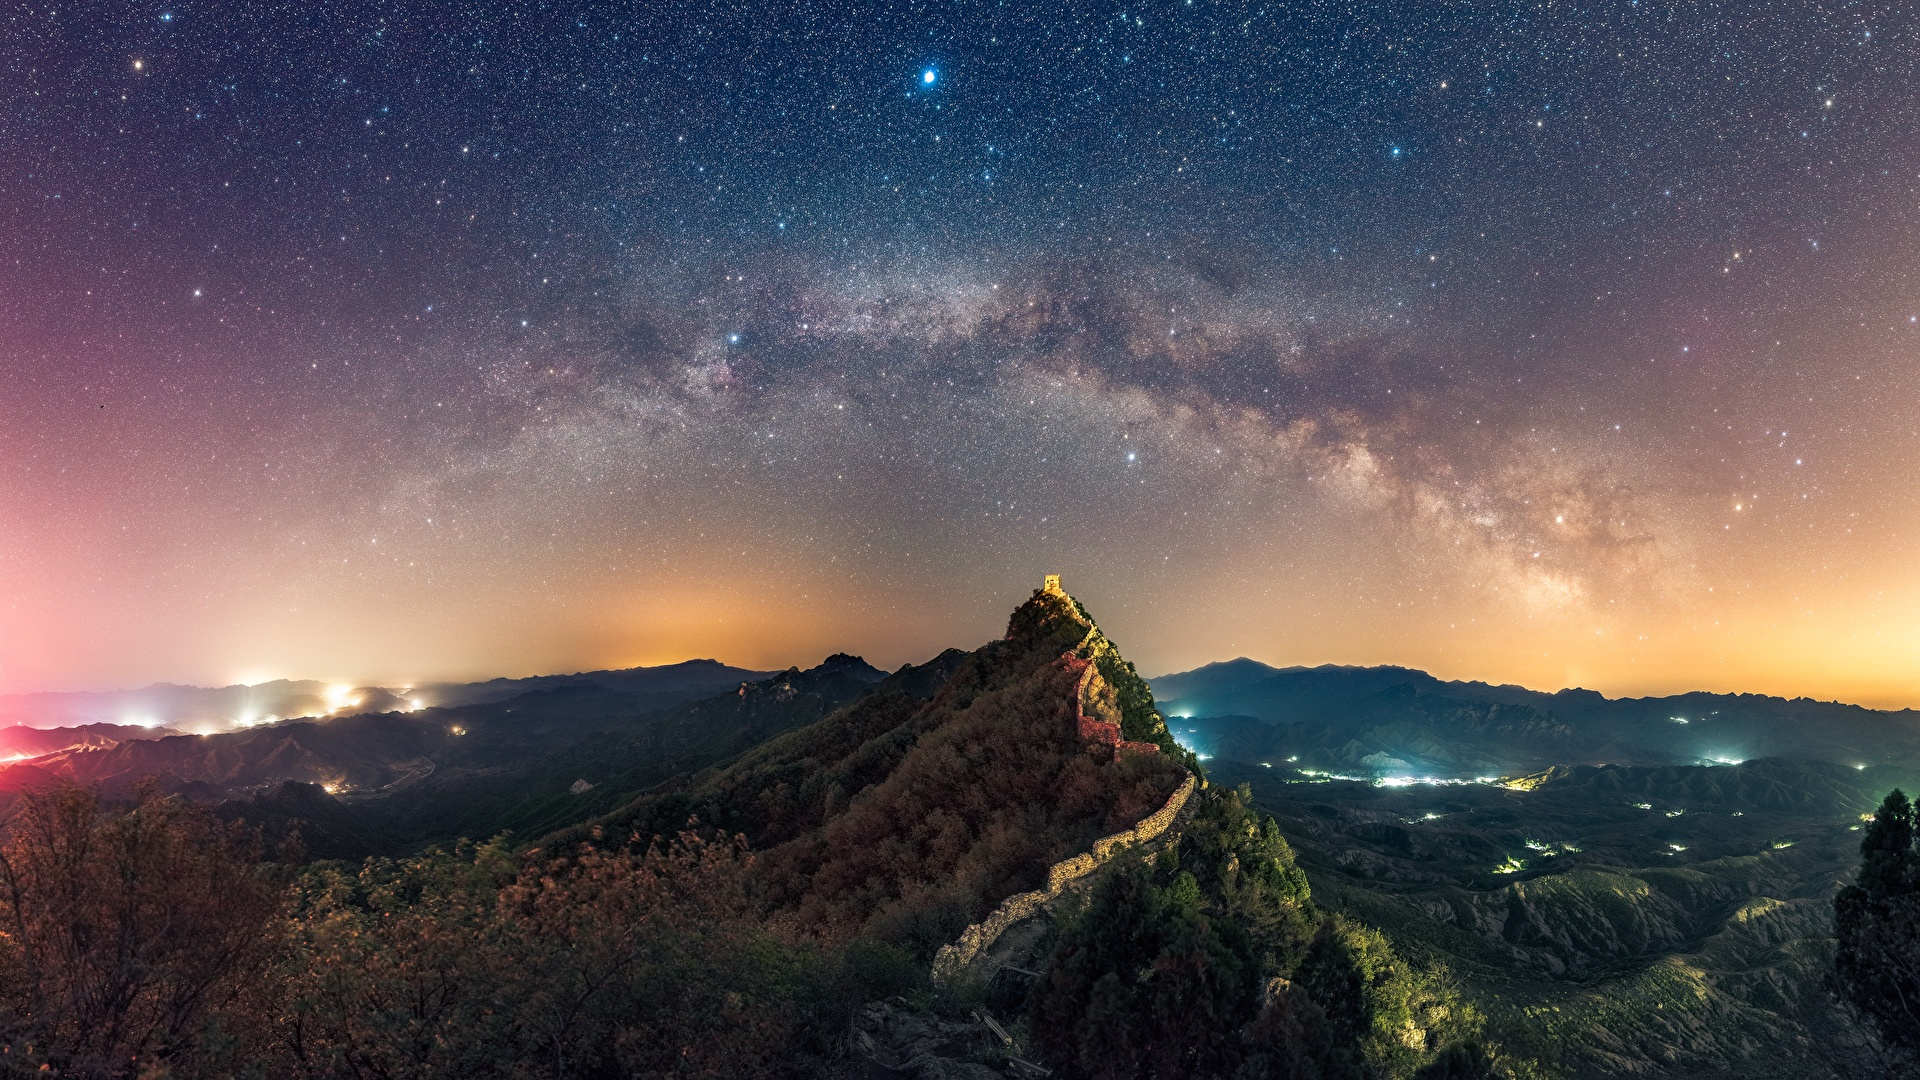 Wallpaper Stars Nature Mountains The Great Wall of China 1920x1080 1920x1080